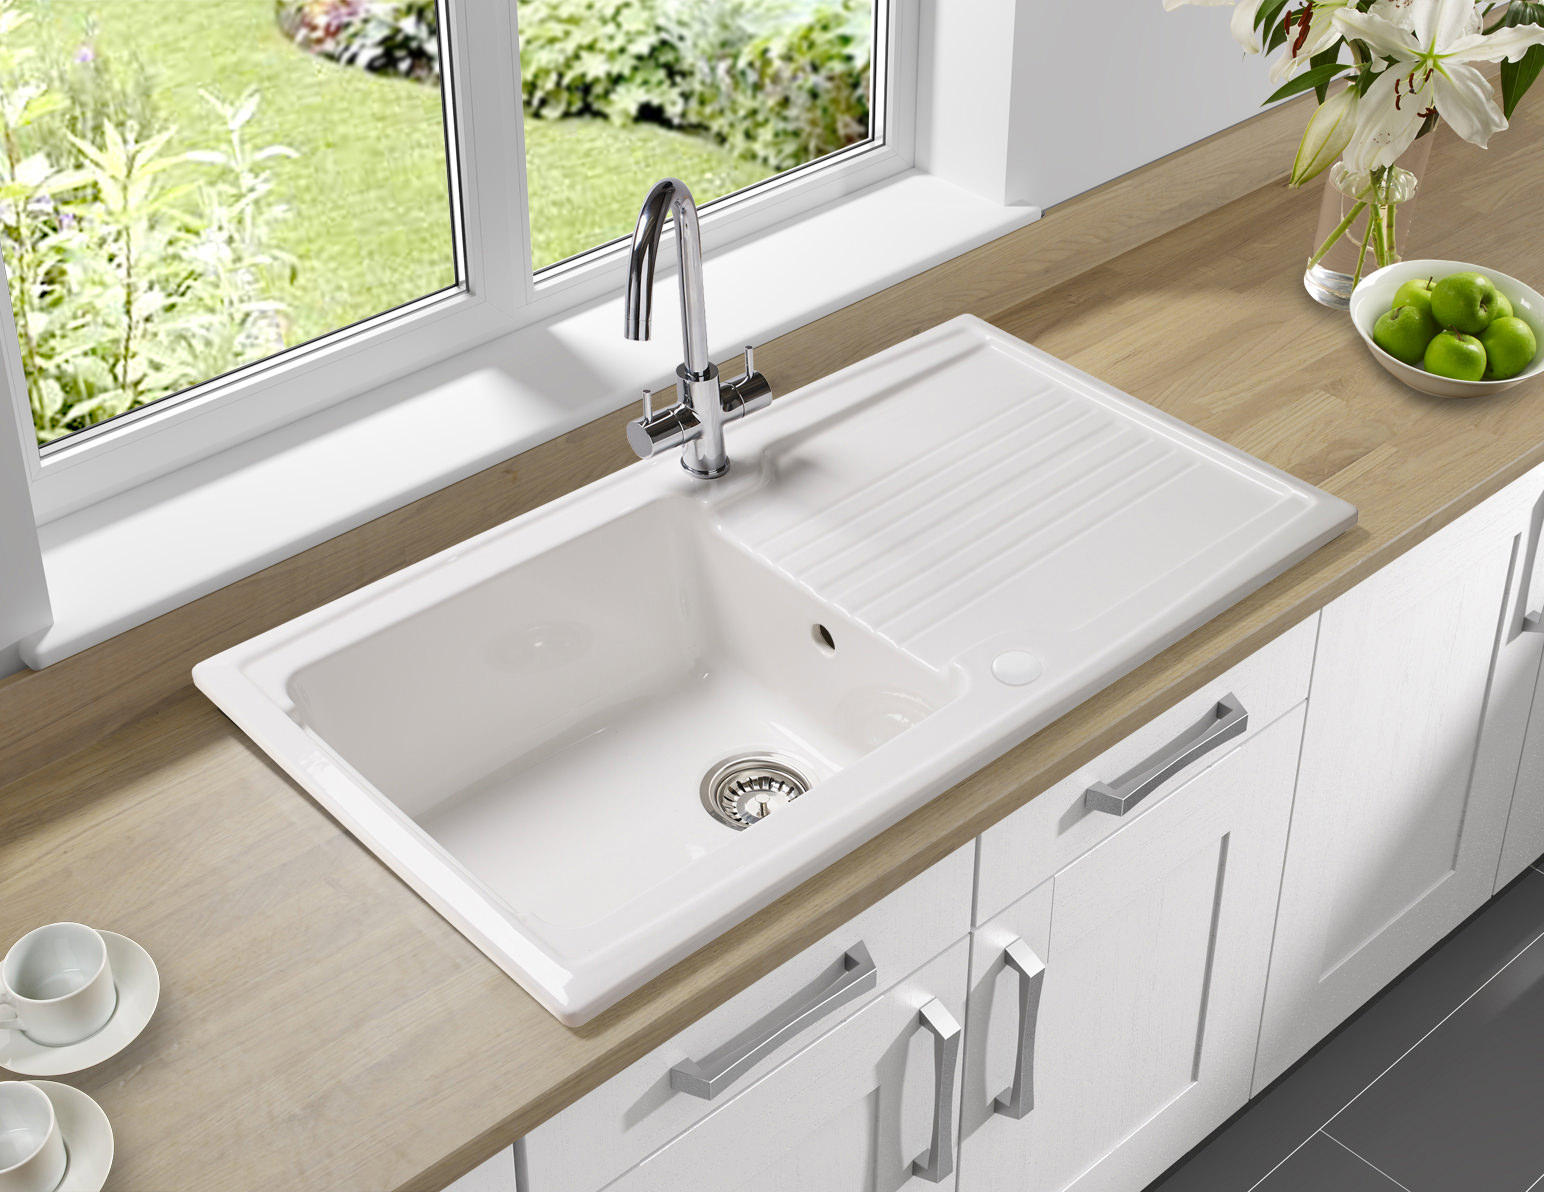 inset kitchen sink astracast equinox 1 0 bowl ceramic white inset sink and 1870